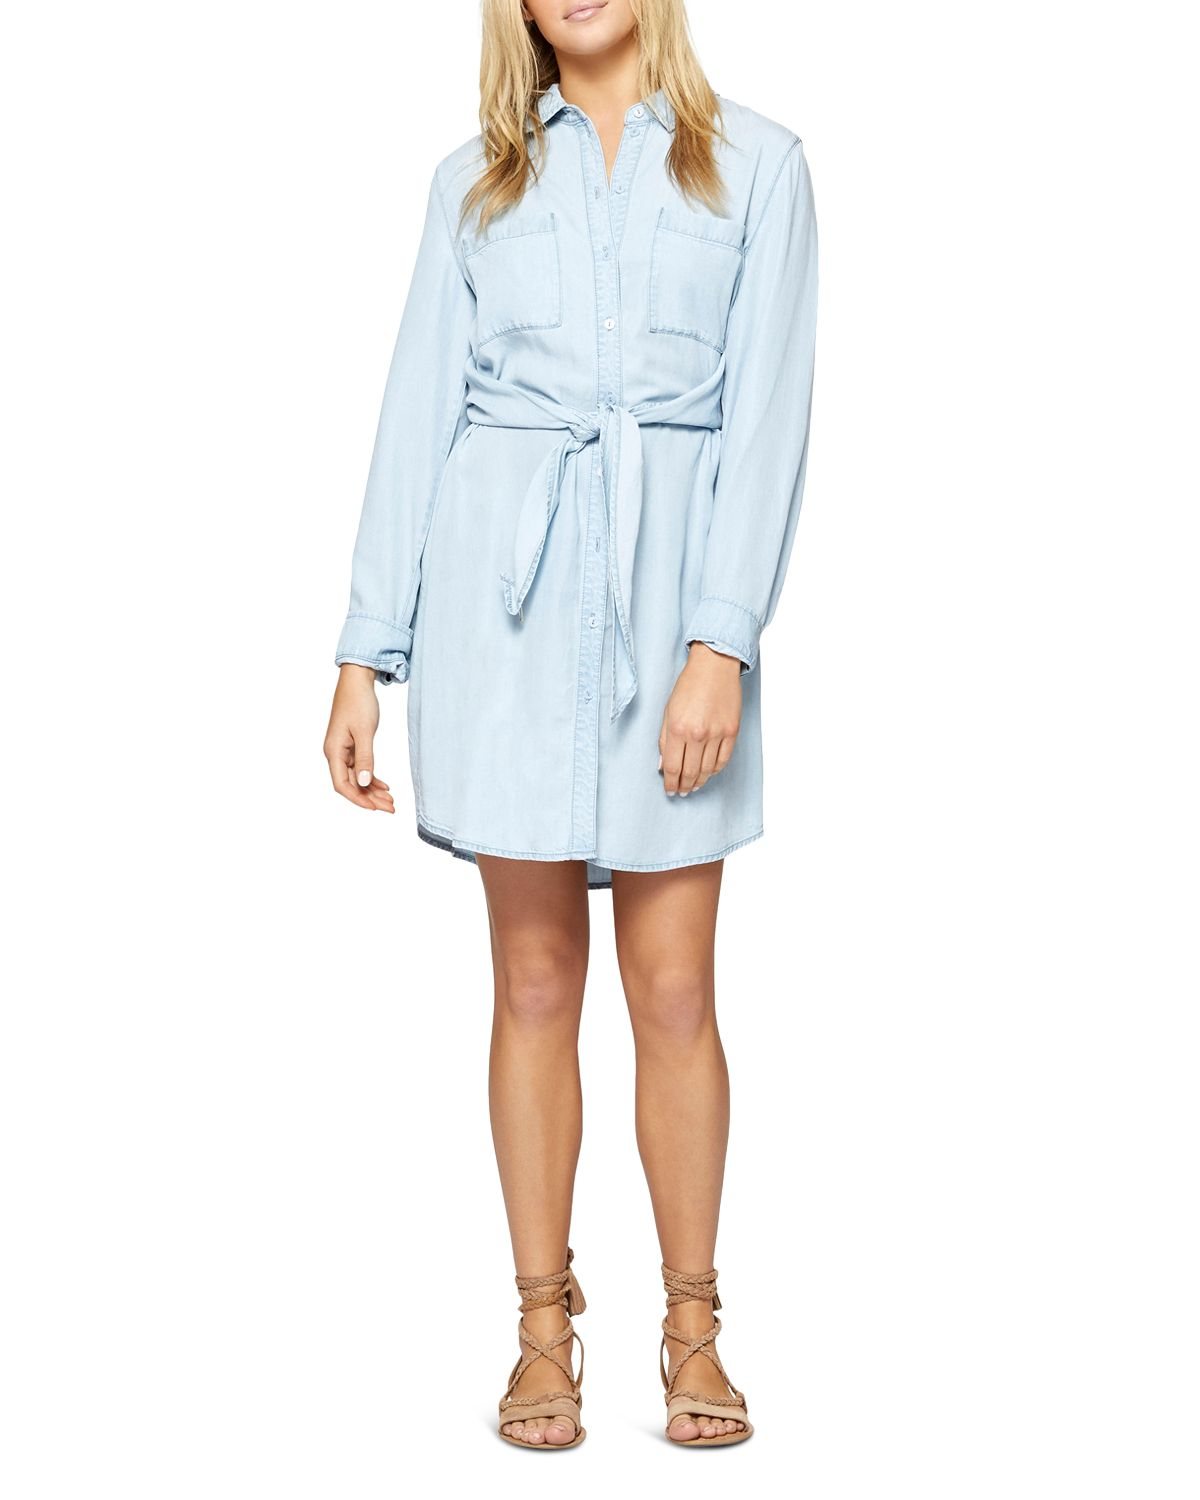 Tali Tie Waist Chambray Shirt Dress   100% Exclusive by Sanctuary